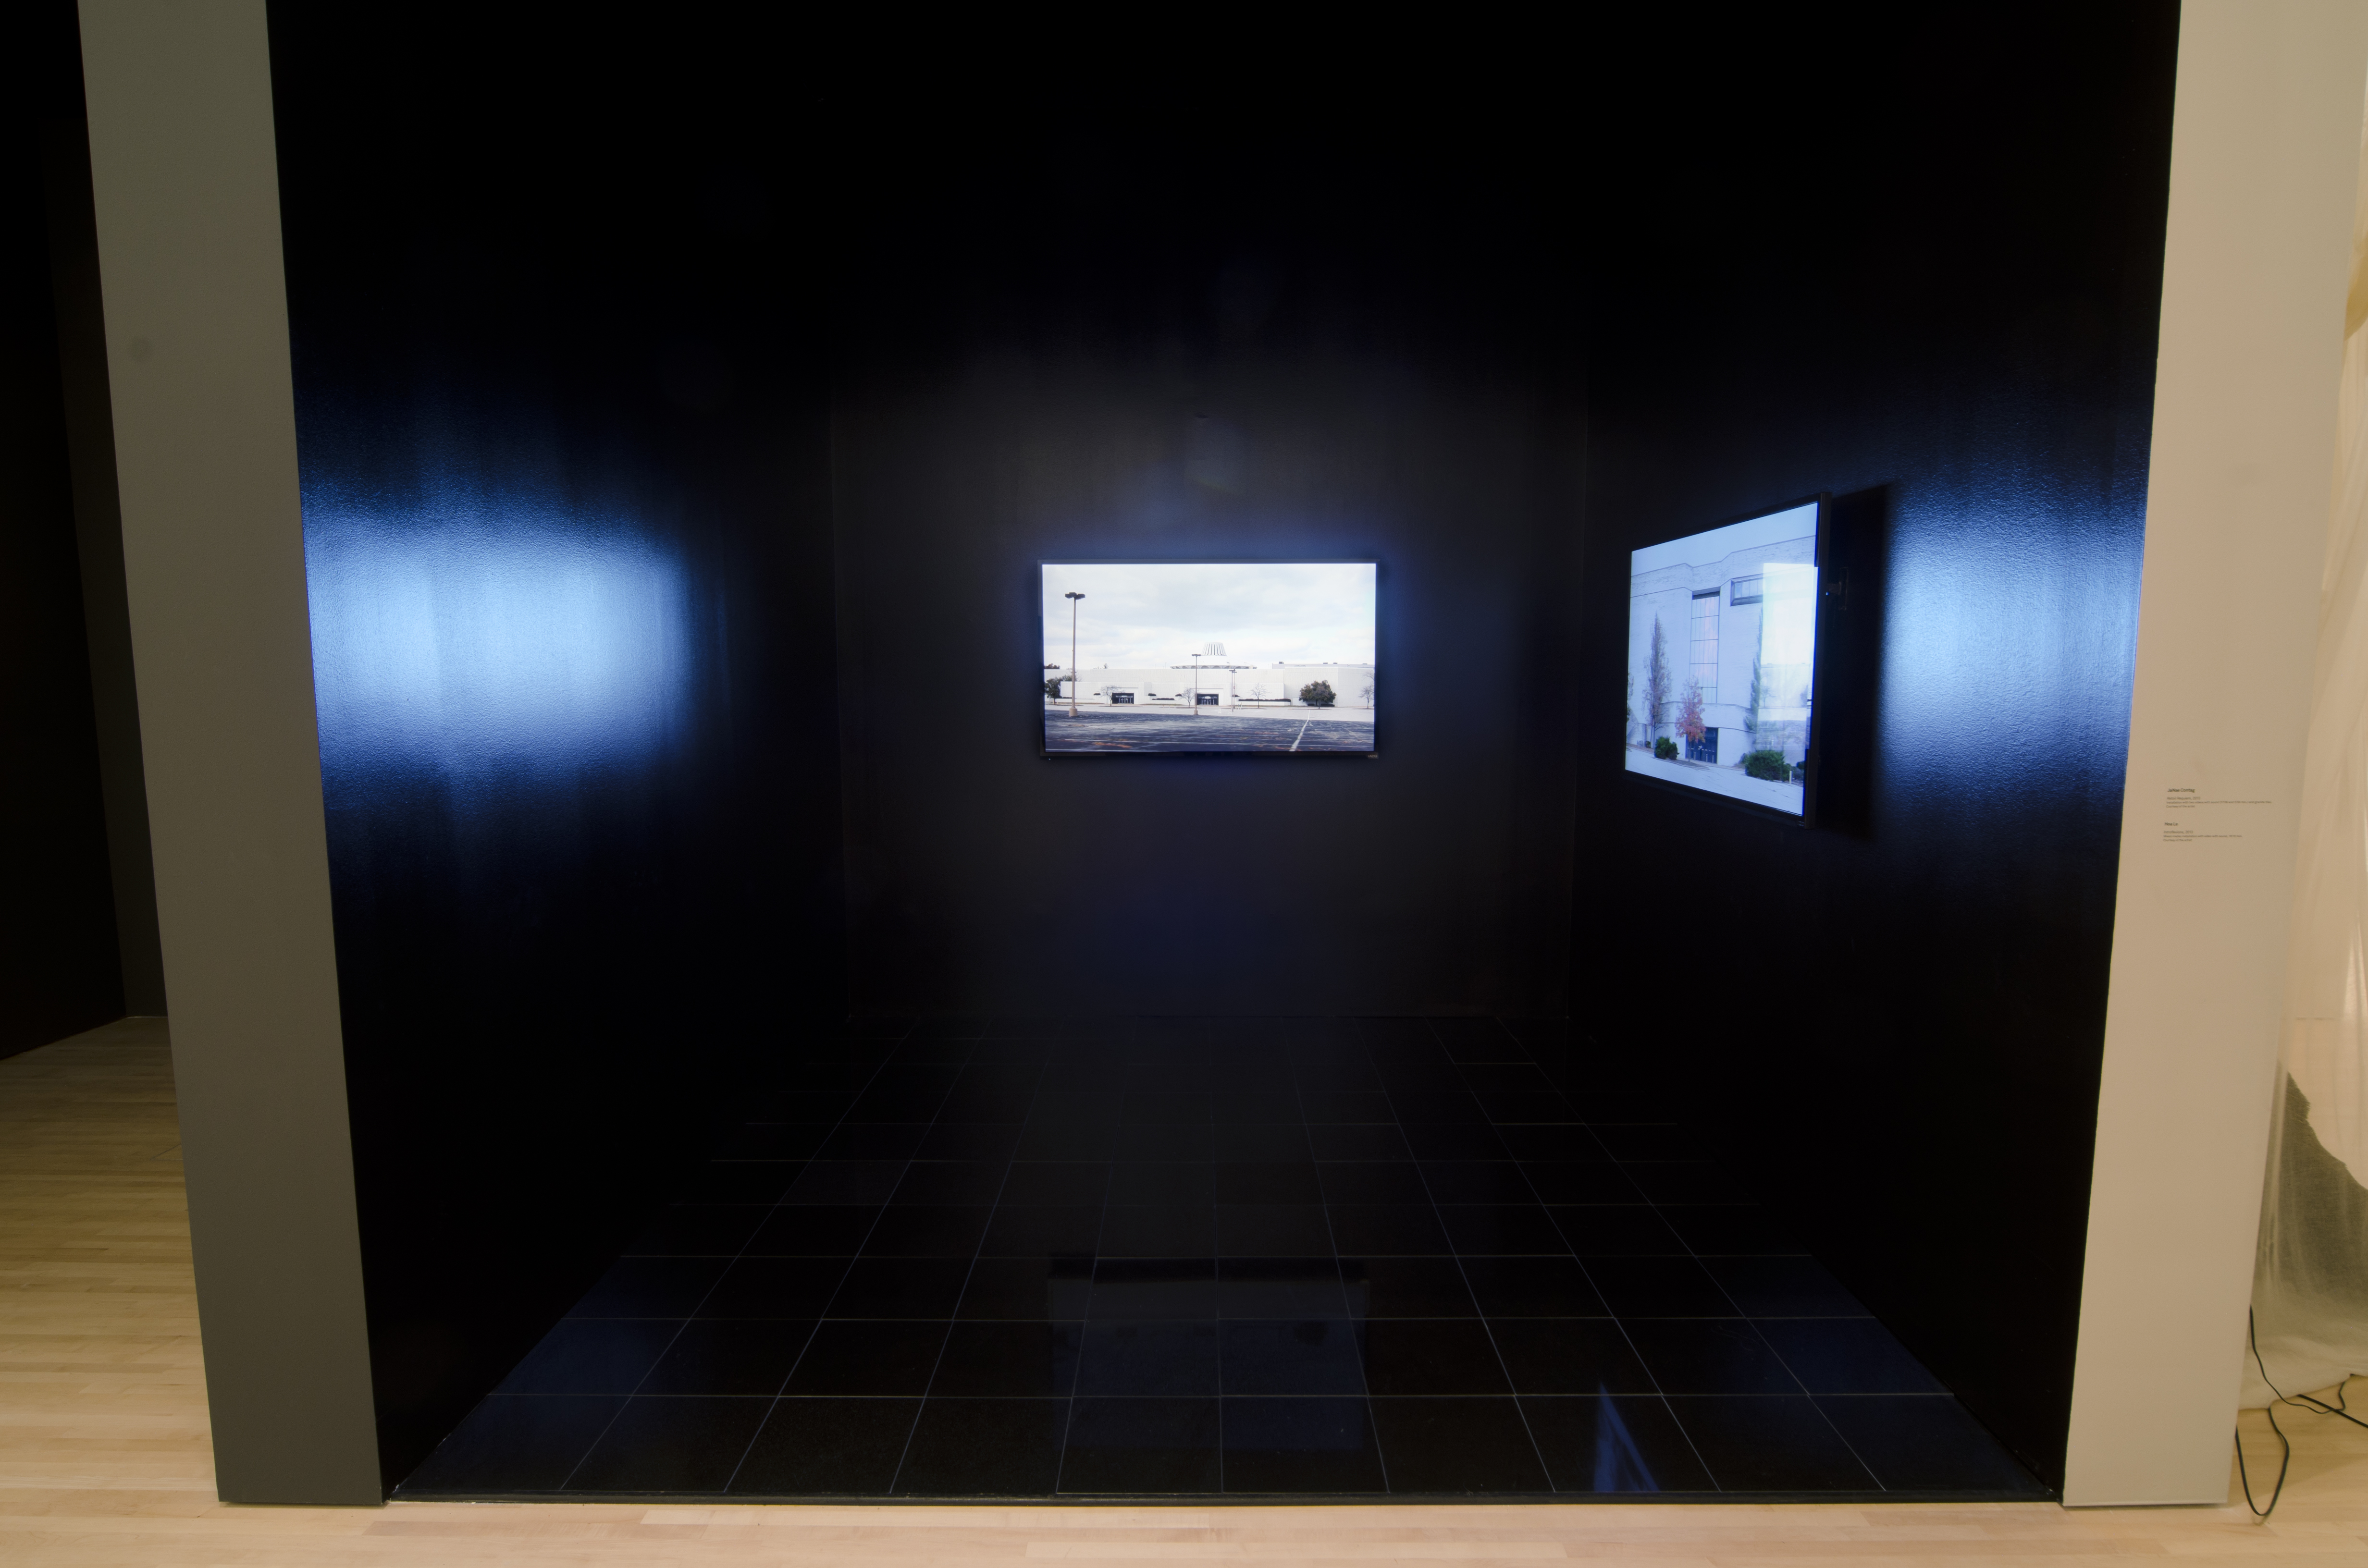 Installation View of Retail Requiem by JaNae Contag at Mildred Kemper Lane Art Museum